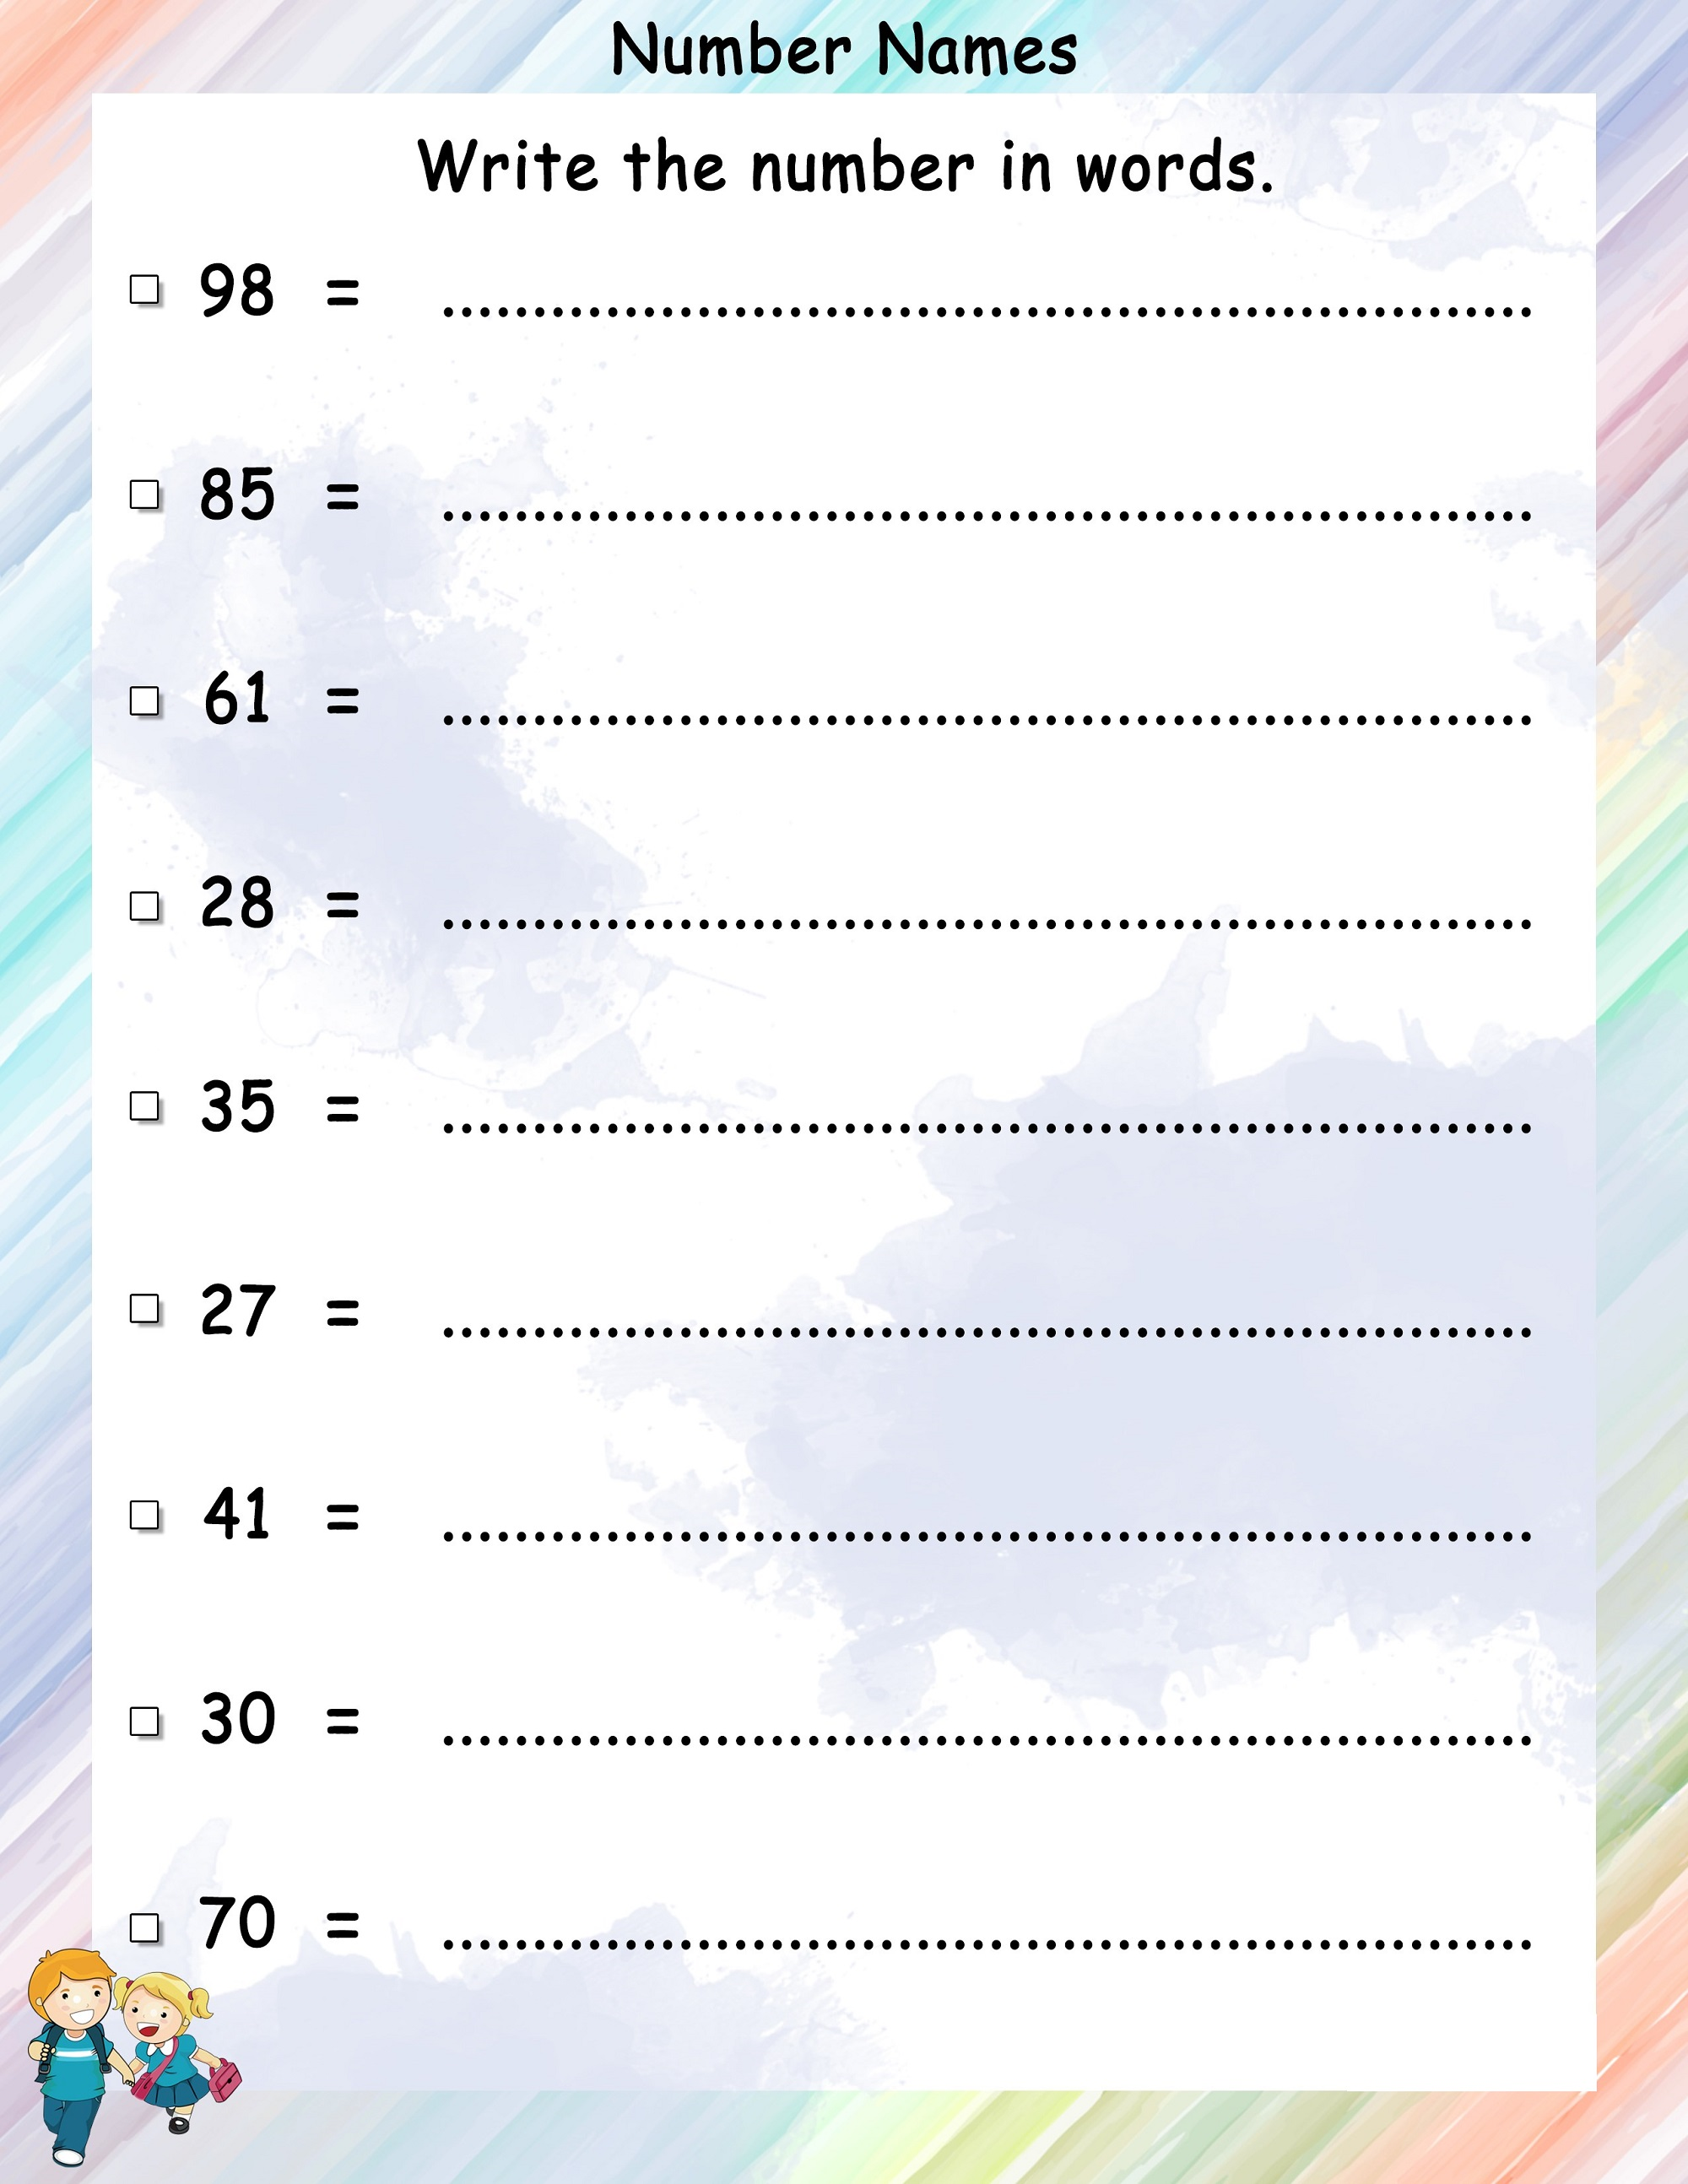 number-names-worksheet-activity